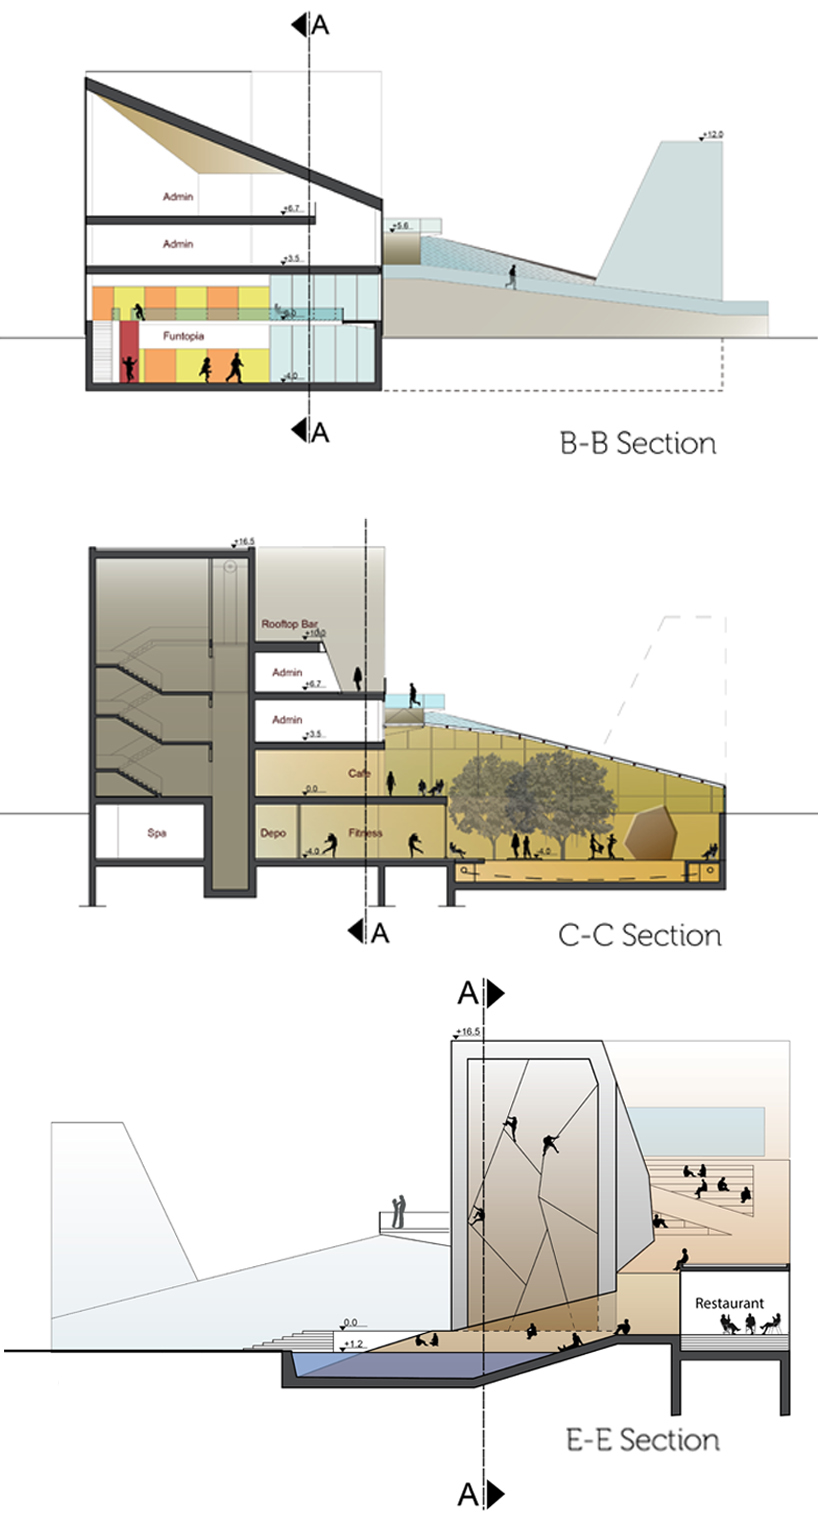 Collider Activity Center Architectural competition architectural design climbing